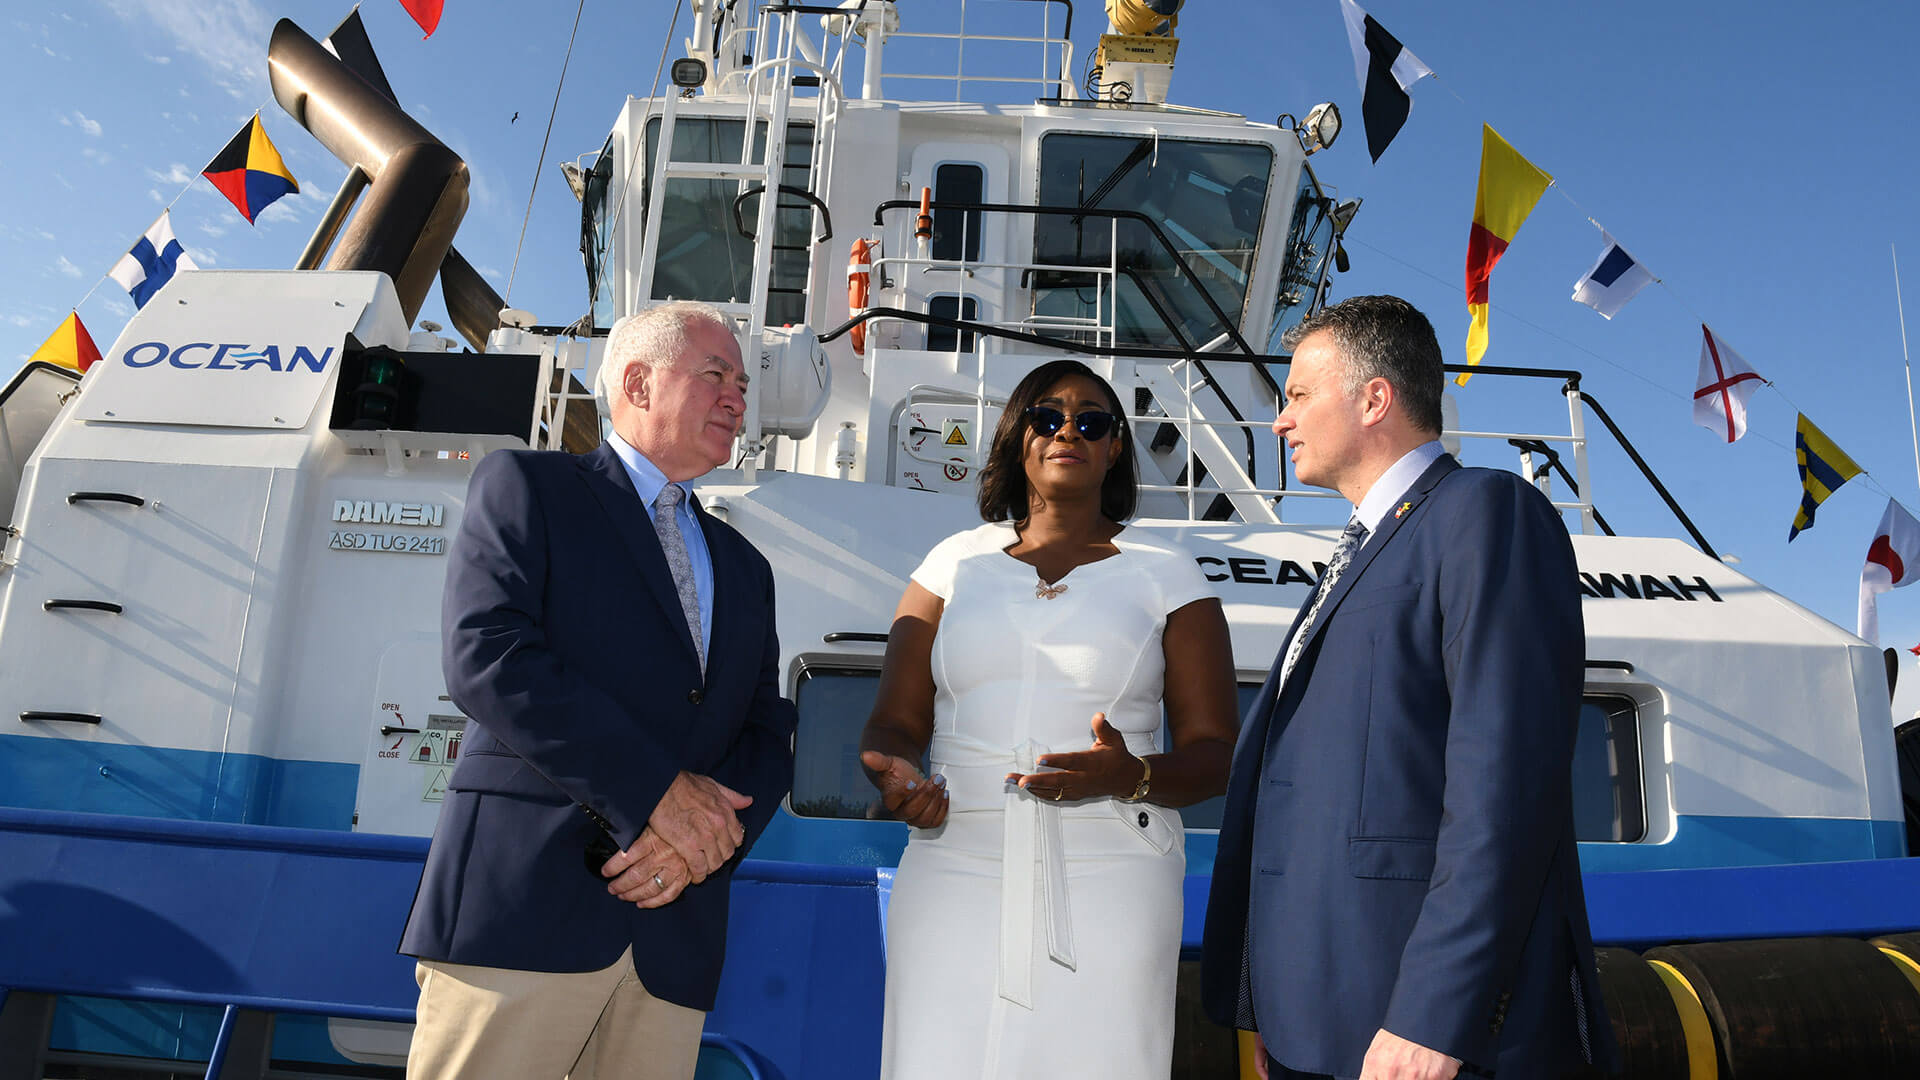 Blessing of two new harbour tugs for Ocean J. Towing Limited